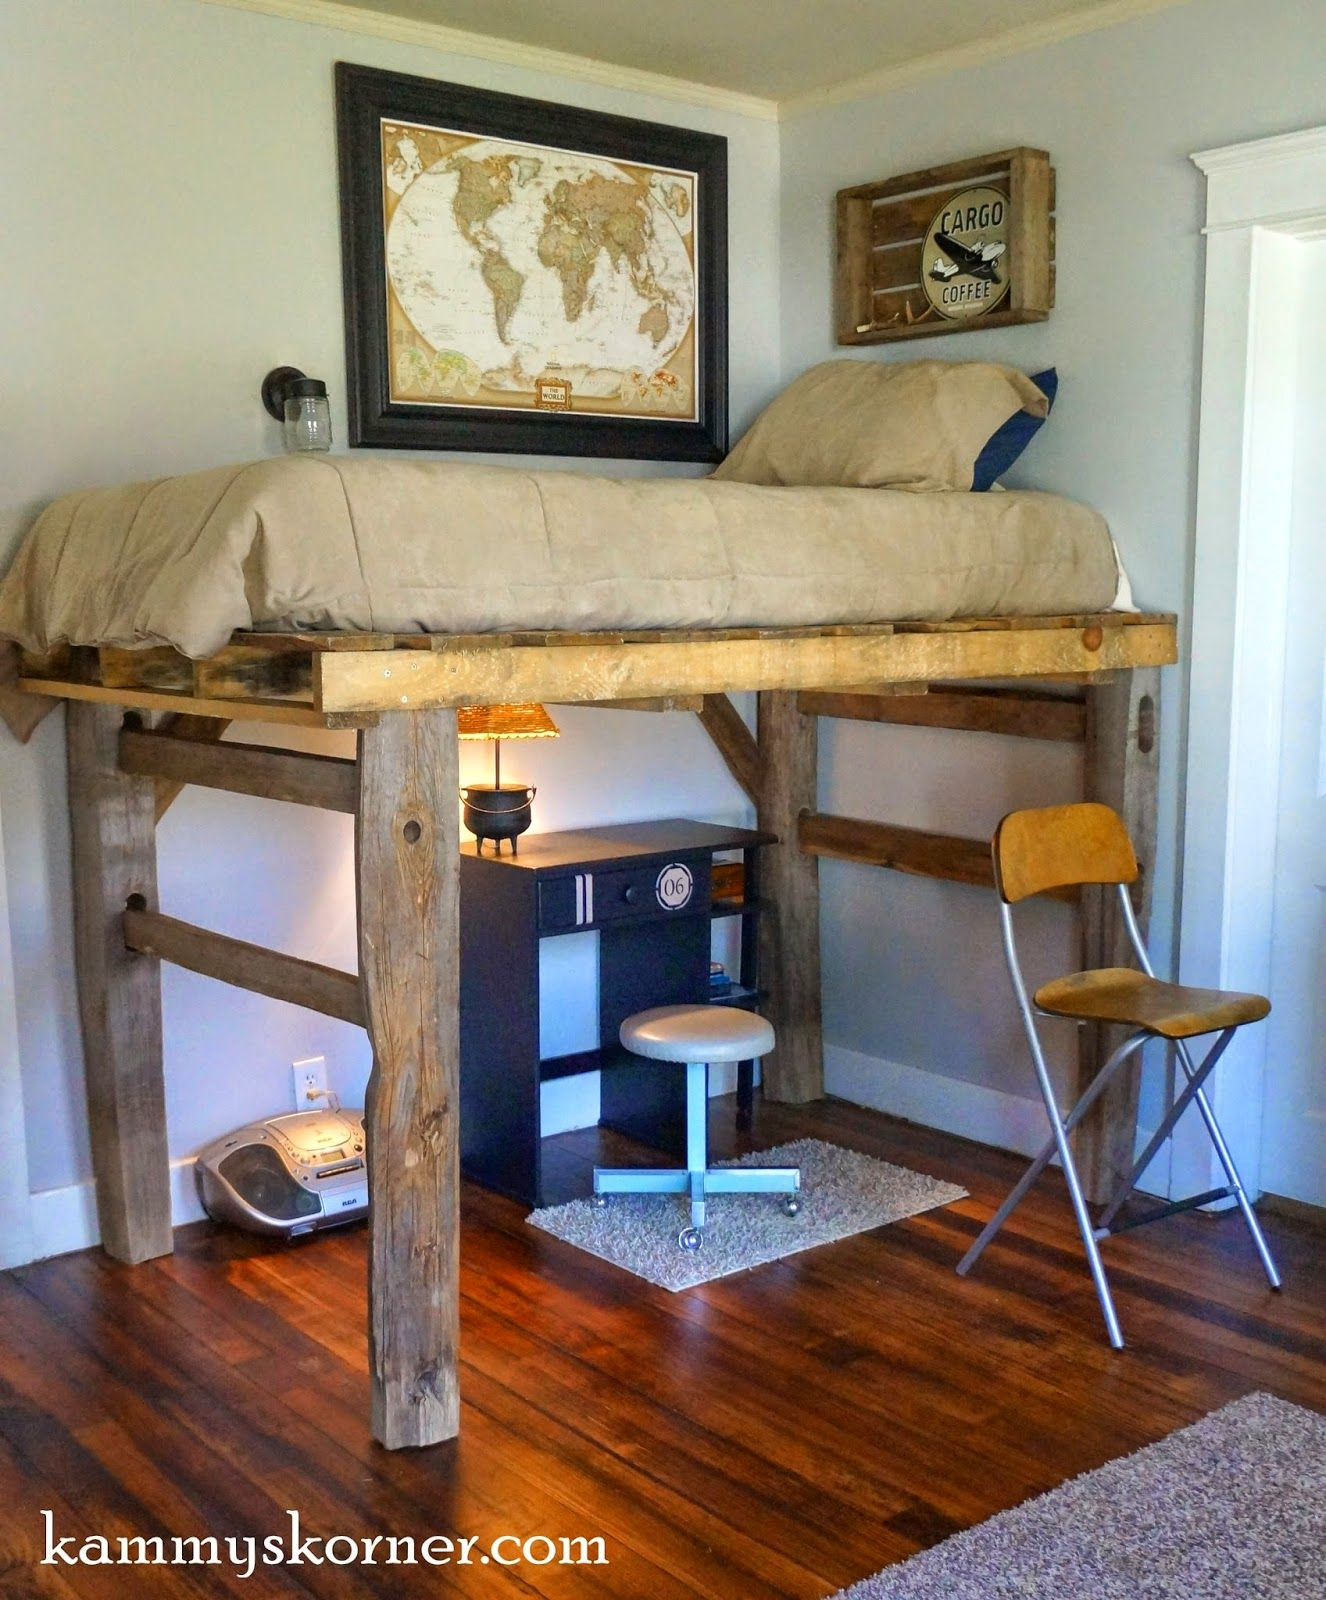 20 diy pallet projects worth doing yourself pallet loft for Diy pallet beds